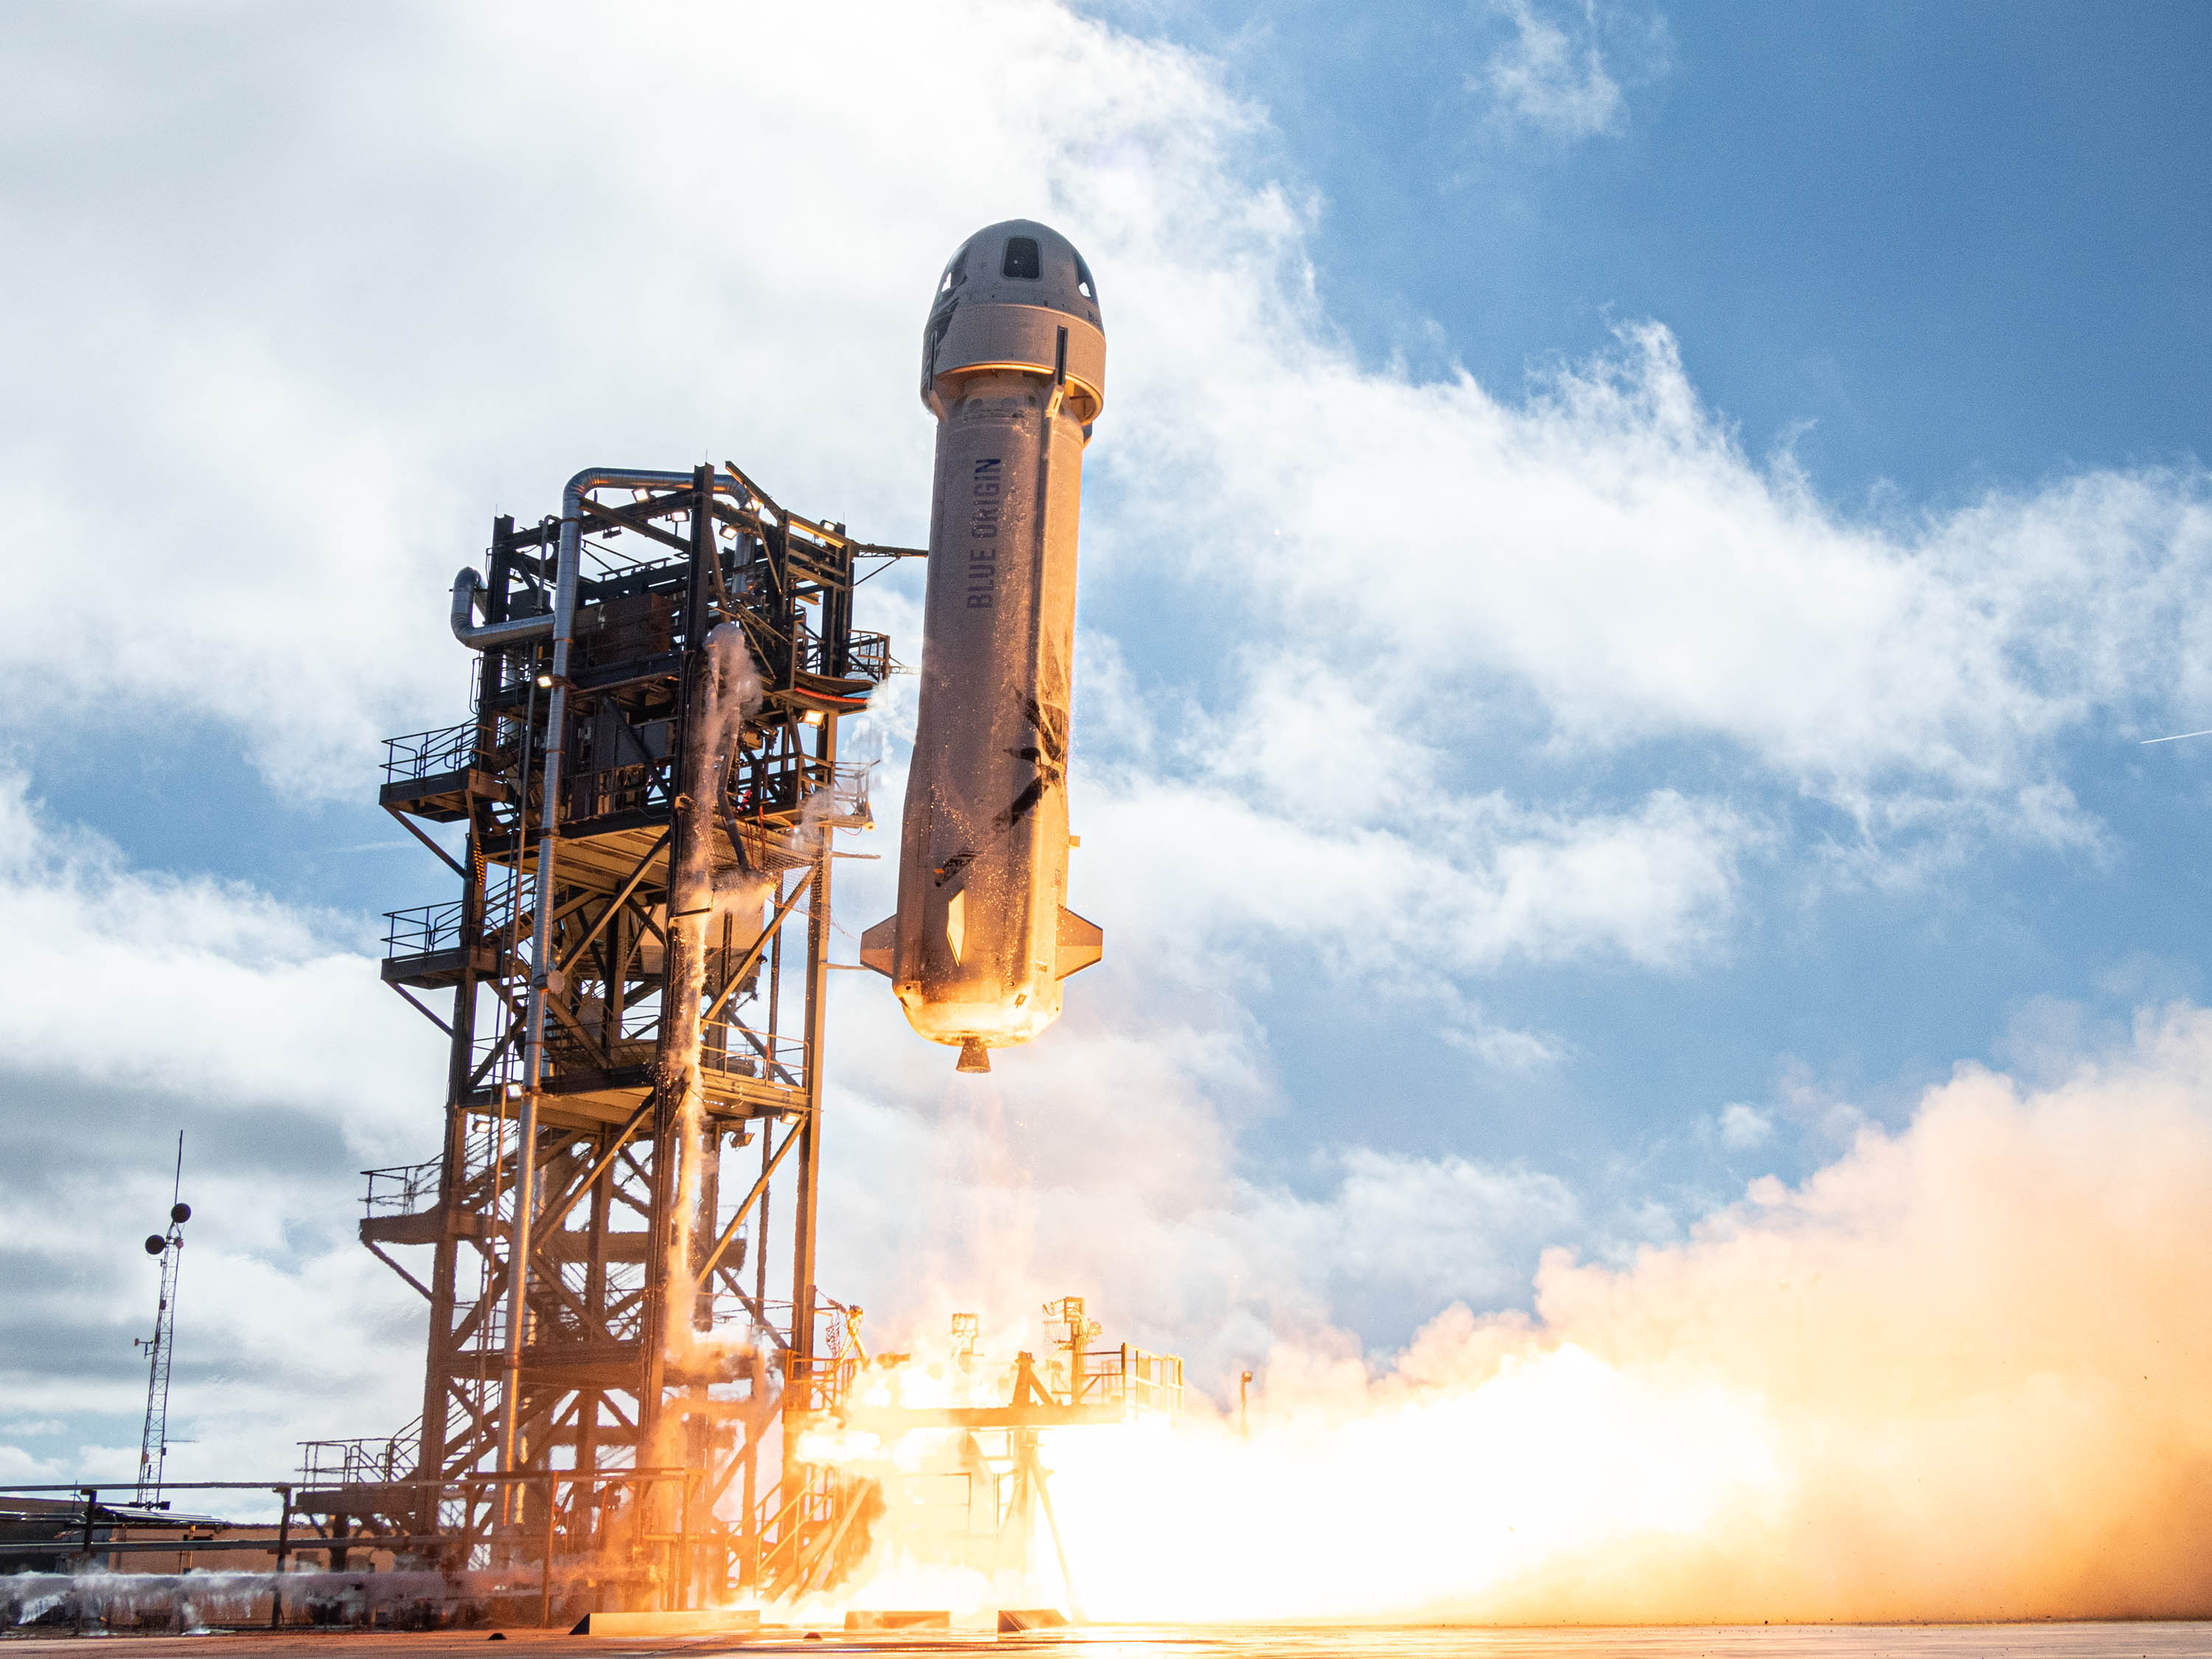 New Shepard lifts off on its 12th mission on December 11, 2019.